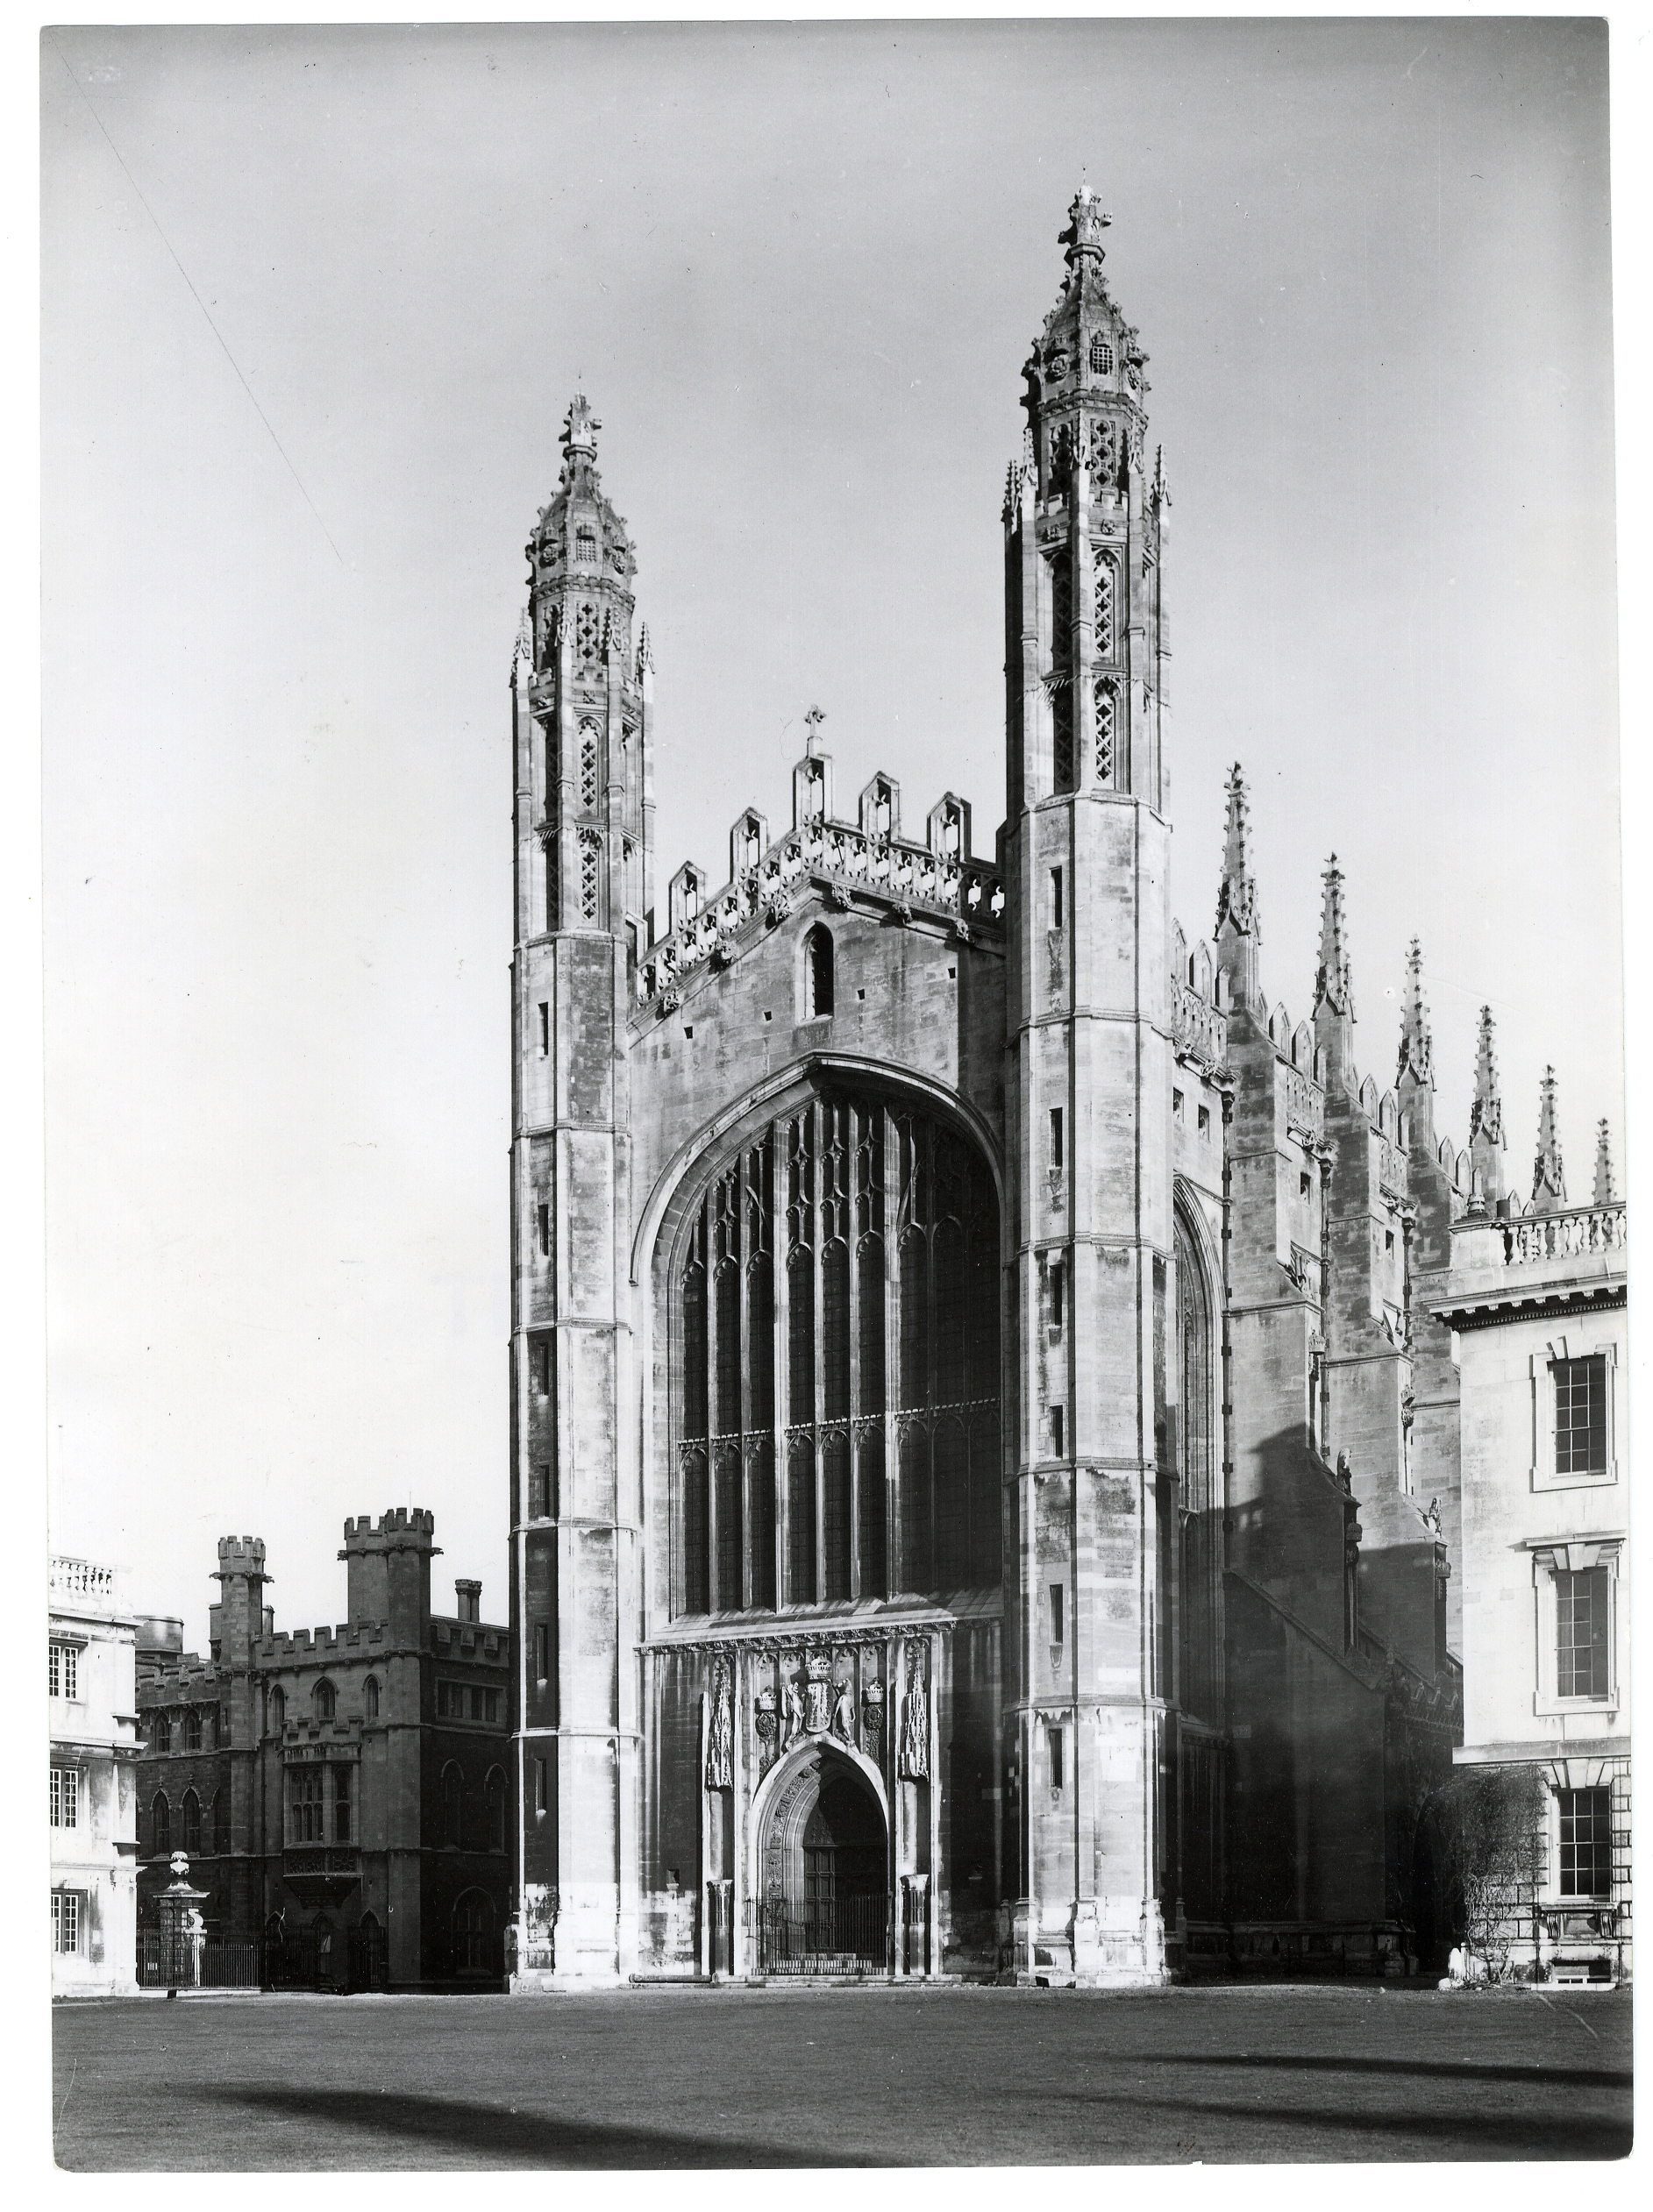 West front of Chapel, showing the stone used in the first period (the paler stone at the base of the towers). Photograph: RCHM, 1949. [Coll-Ph-757]